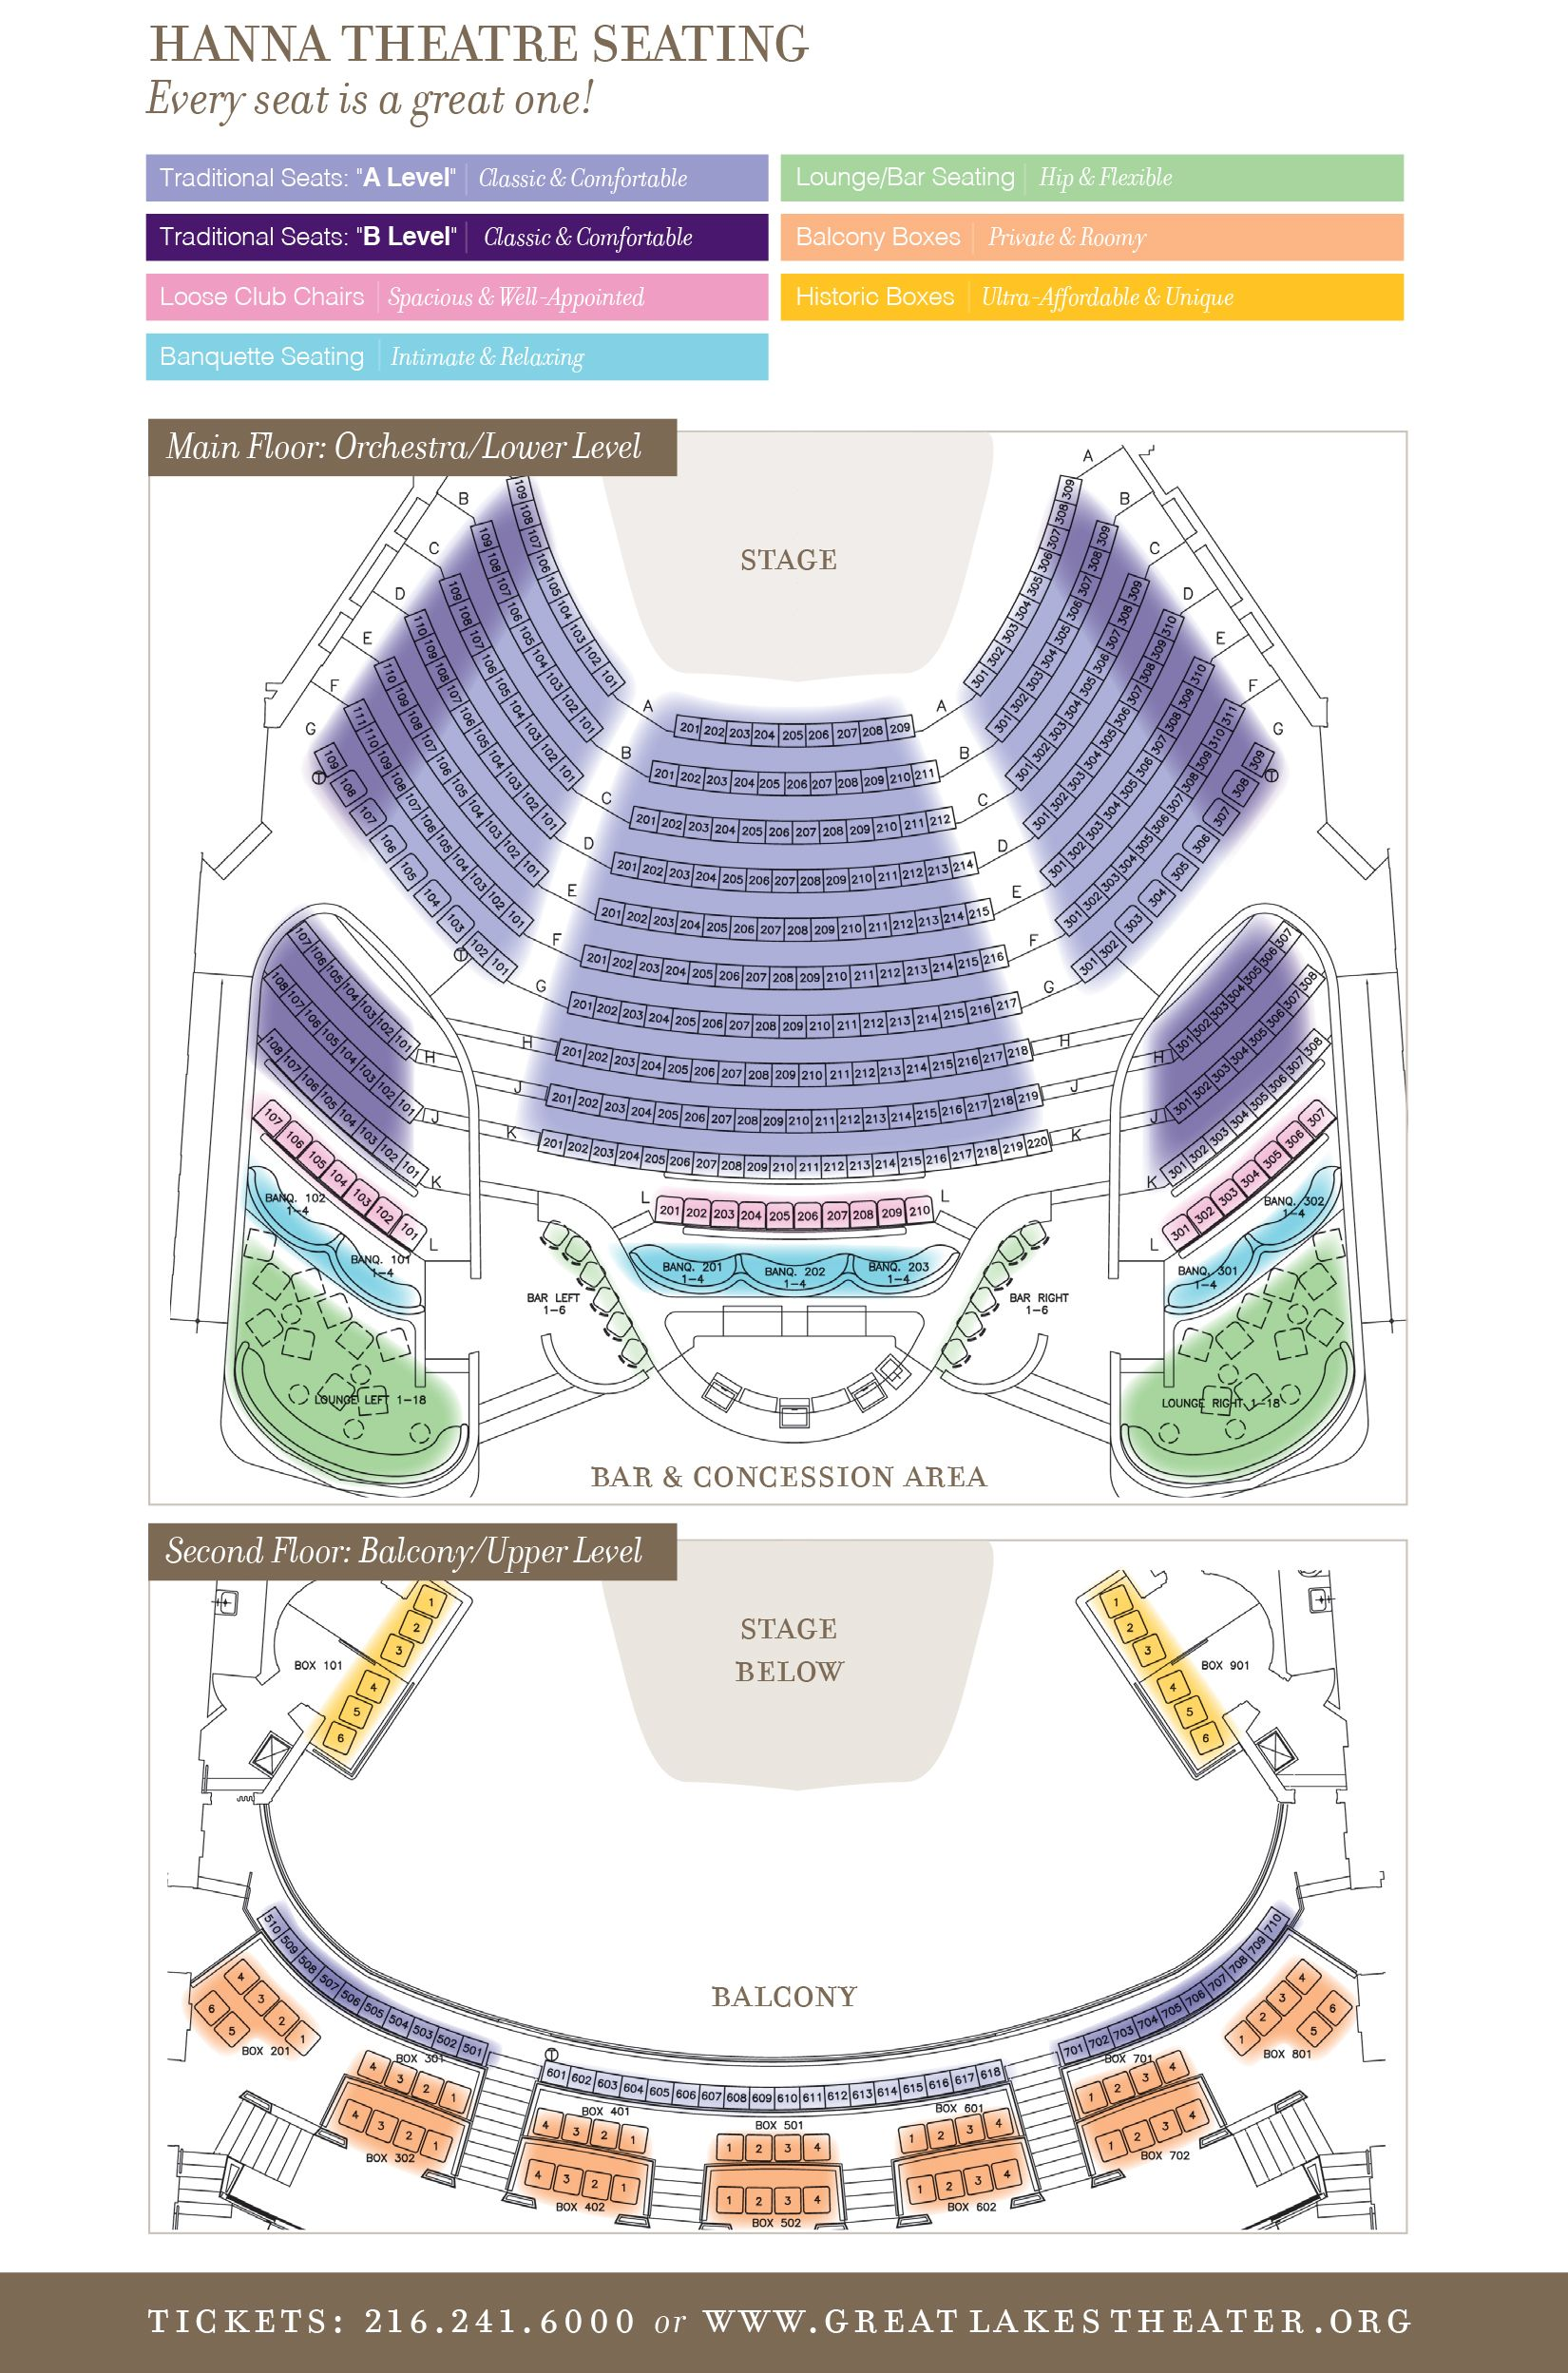 Plan Your Visit Venues And Seating Charts Great Lakes Theater Seating Charts Theater Seating Playhouse Square